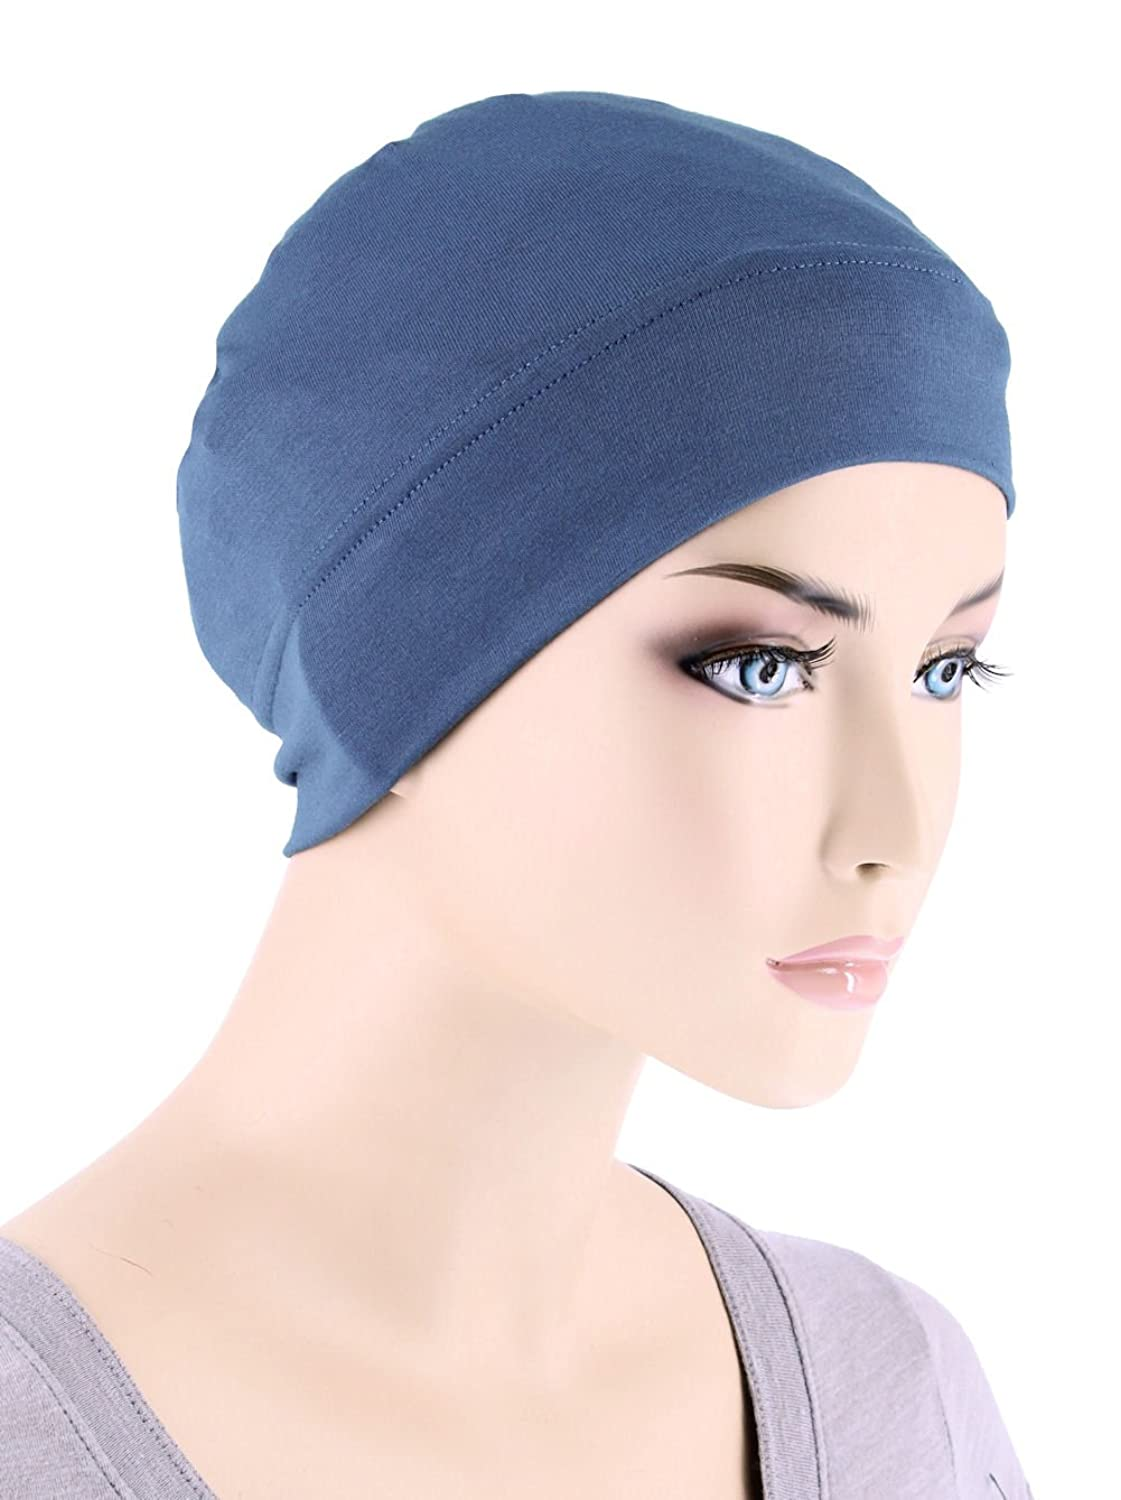 Amazon.com : Chemo Cap, Silky Soft Cotton Knit Head Scarf Hat for ...